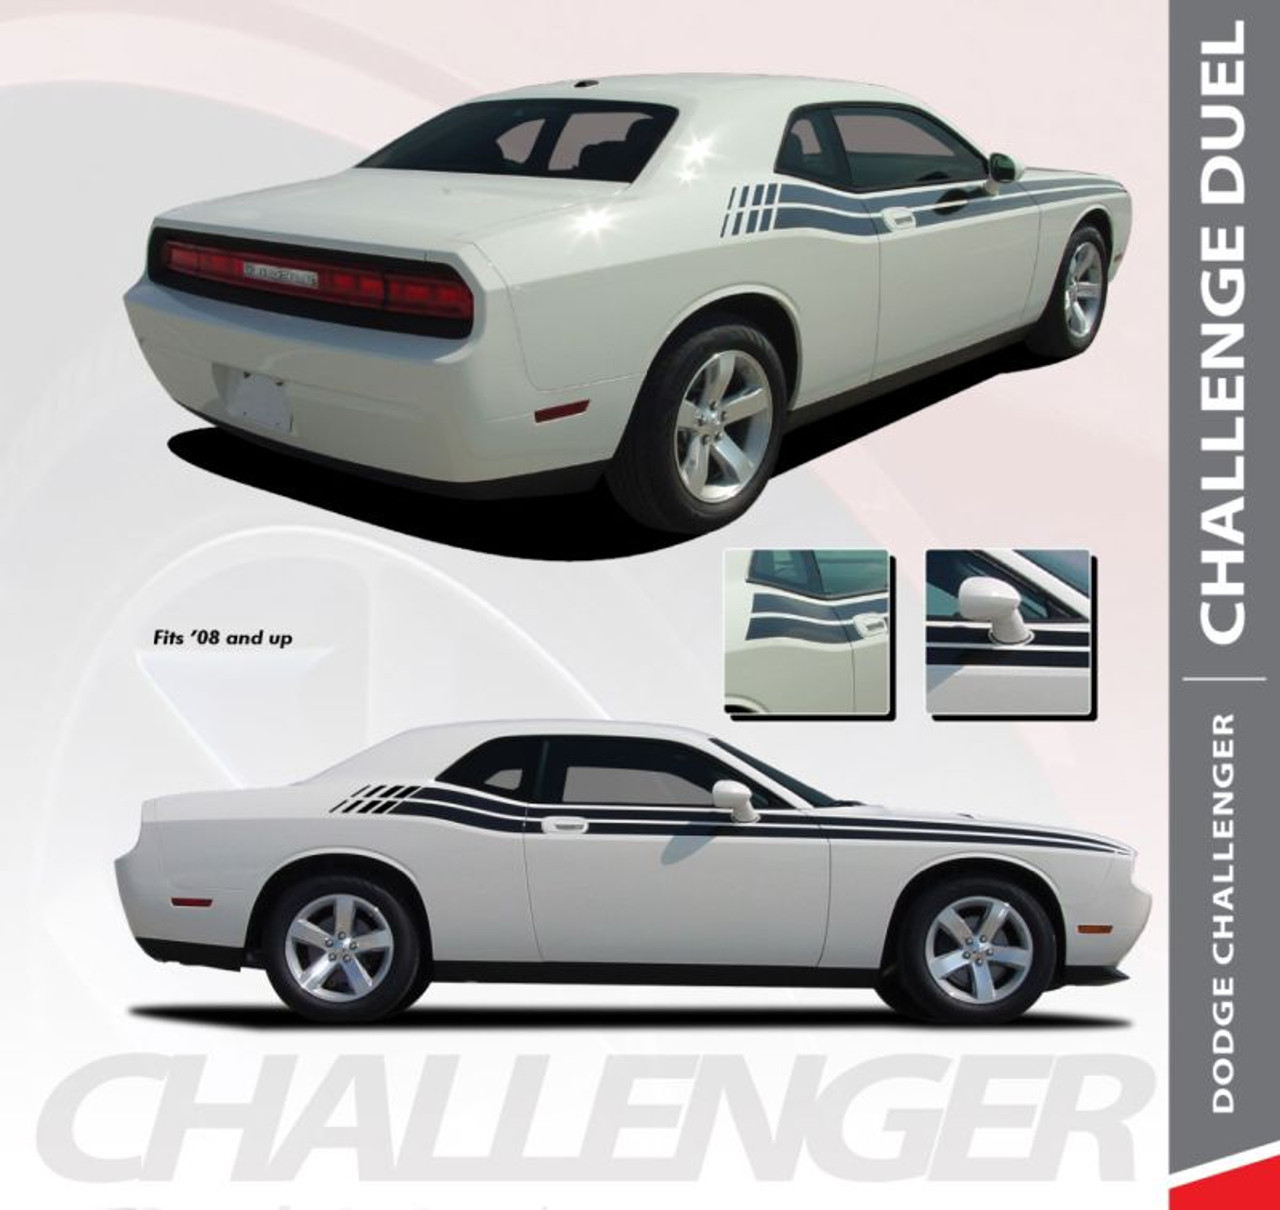 2008 2009 2010 Dodge Challenger Mid bodyline Side Stripes Racing Decals Sport